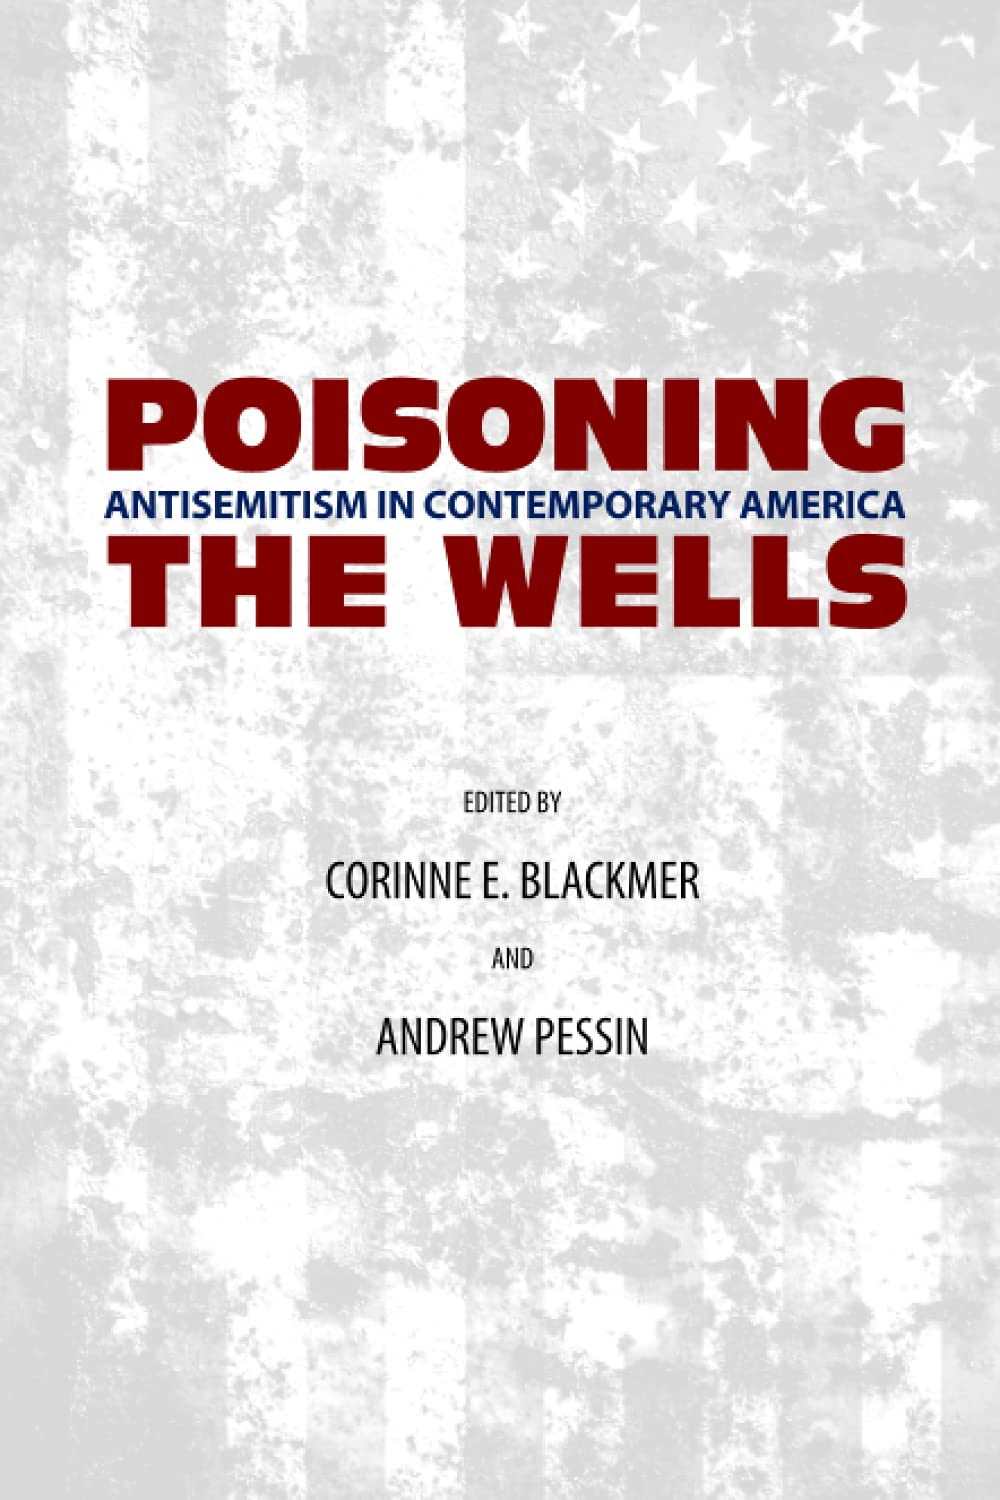 Poisoning the Wells: Antisemitism in Contemporary America